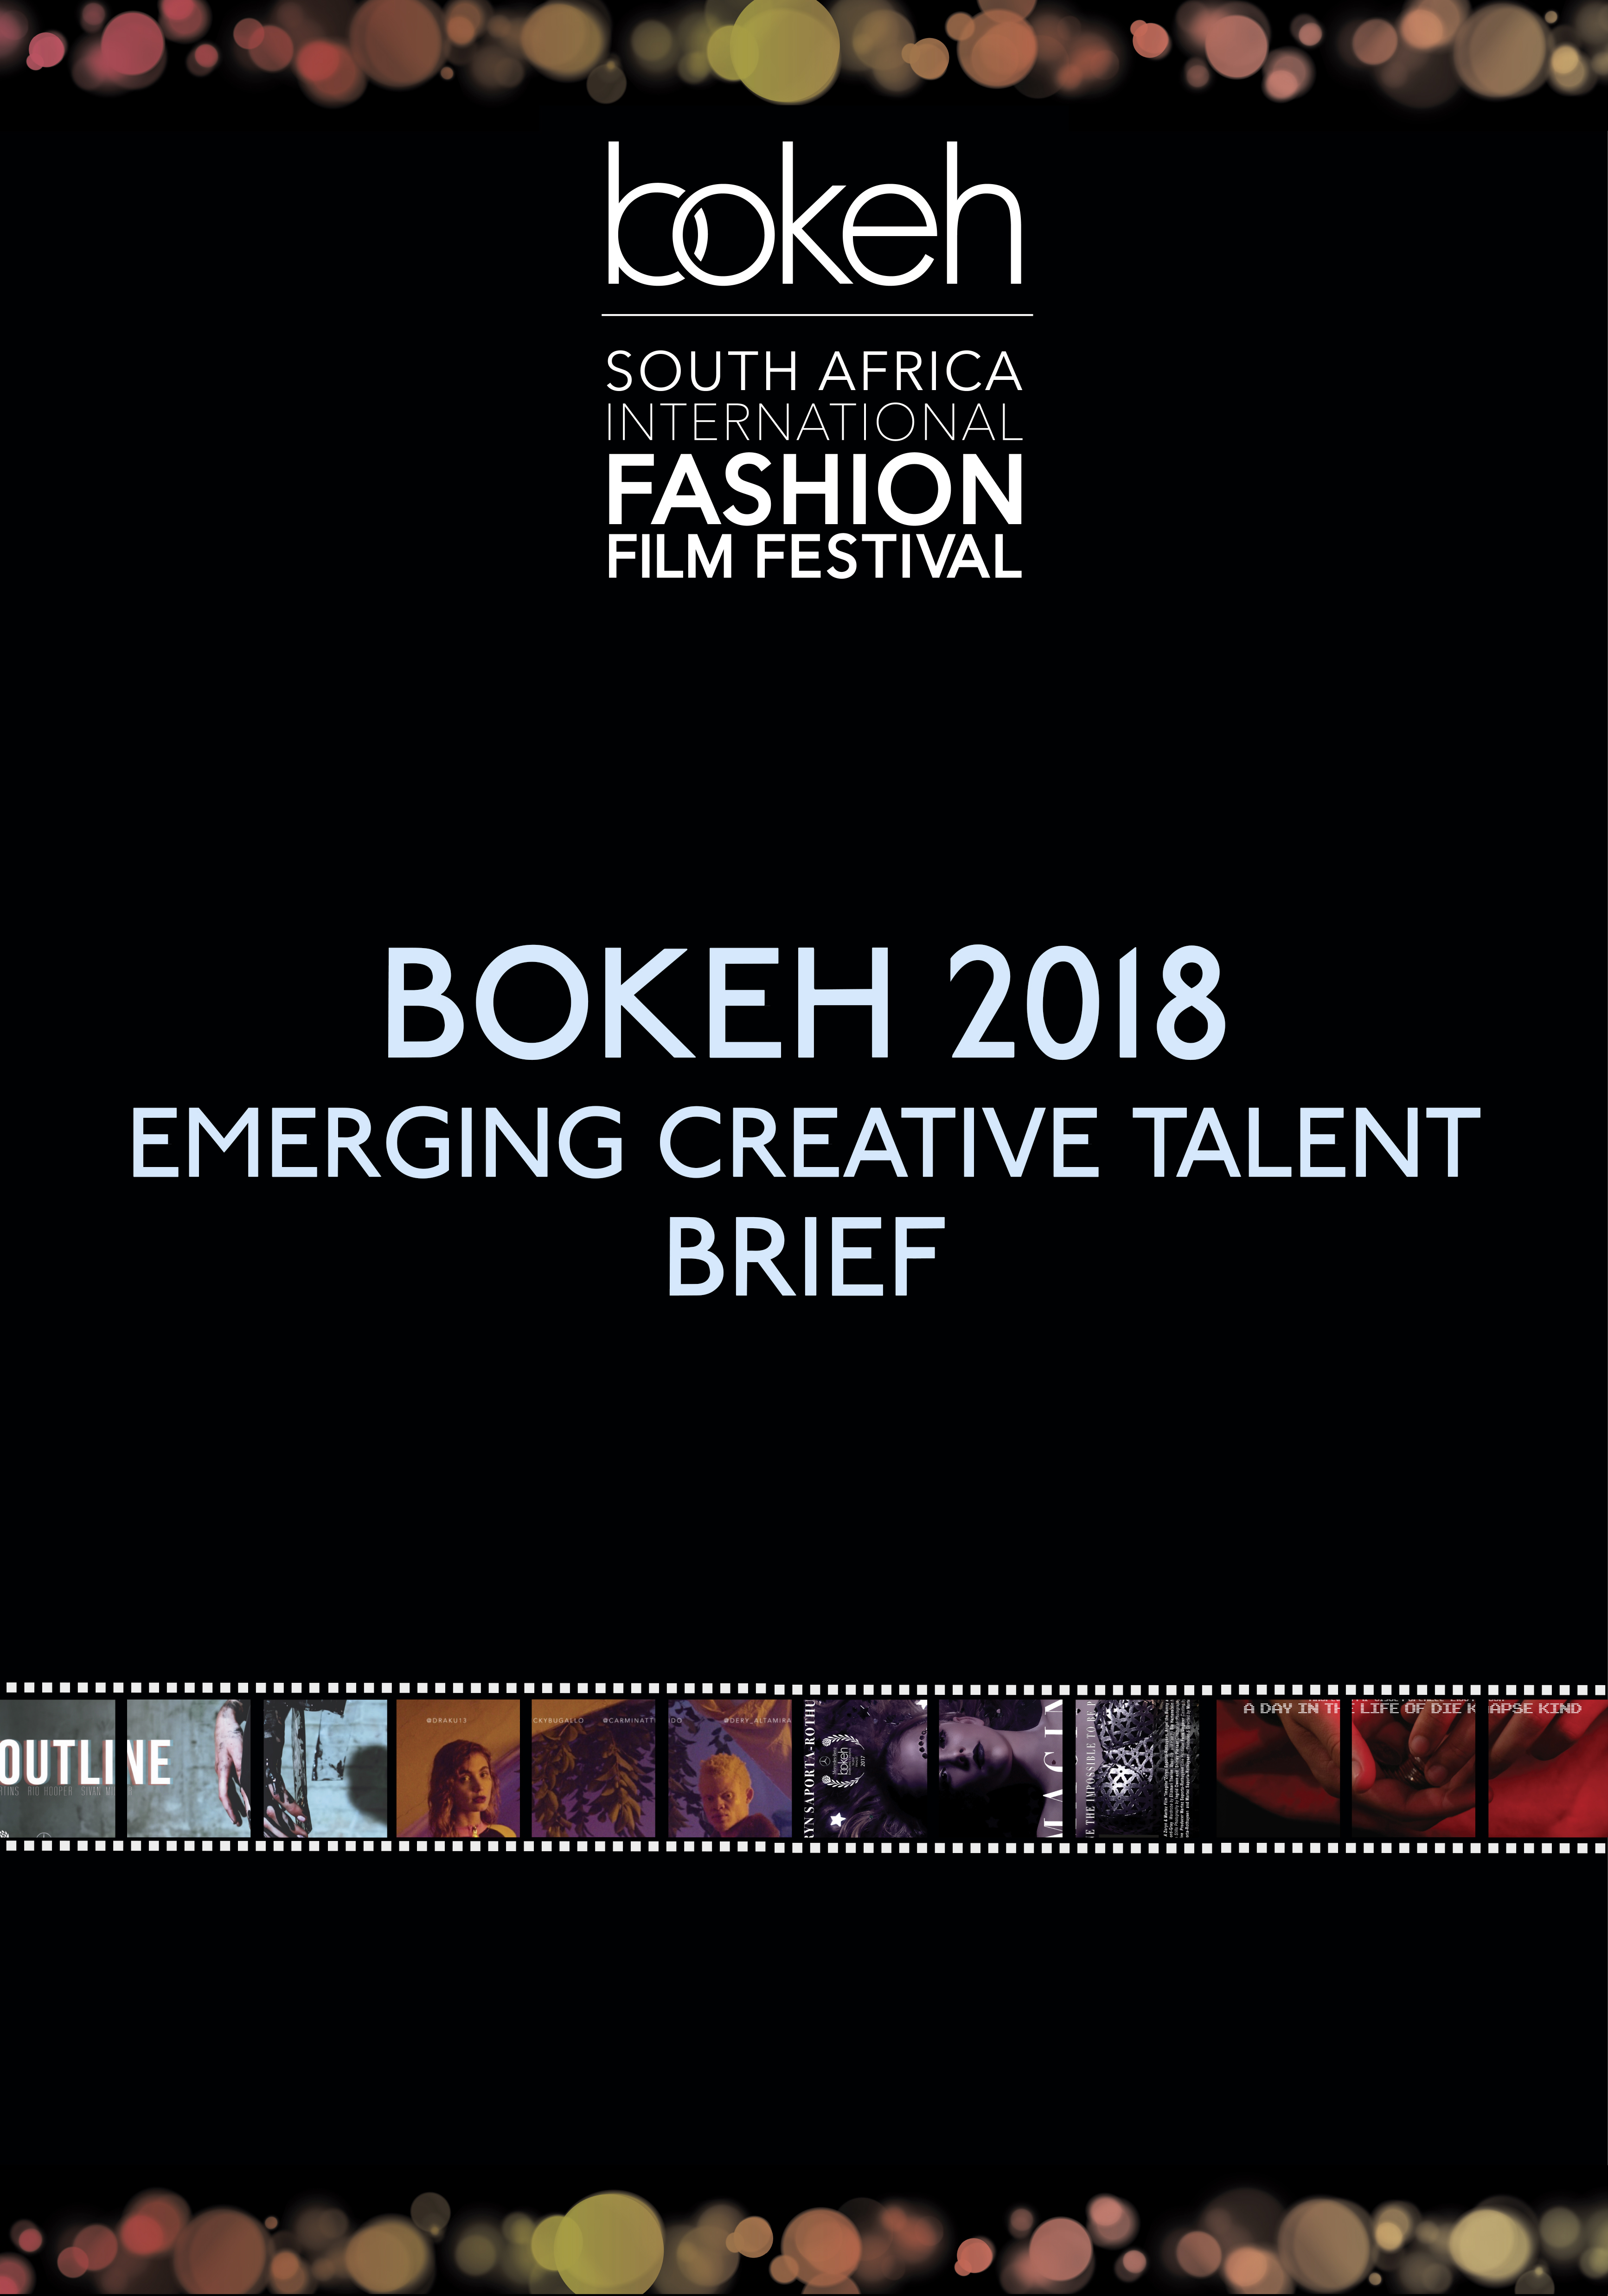 Win R50 000! (Submissions Closed For Emerging Creative Talent Award)